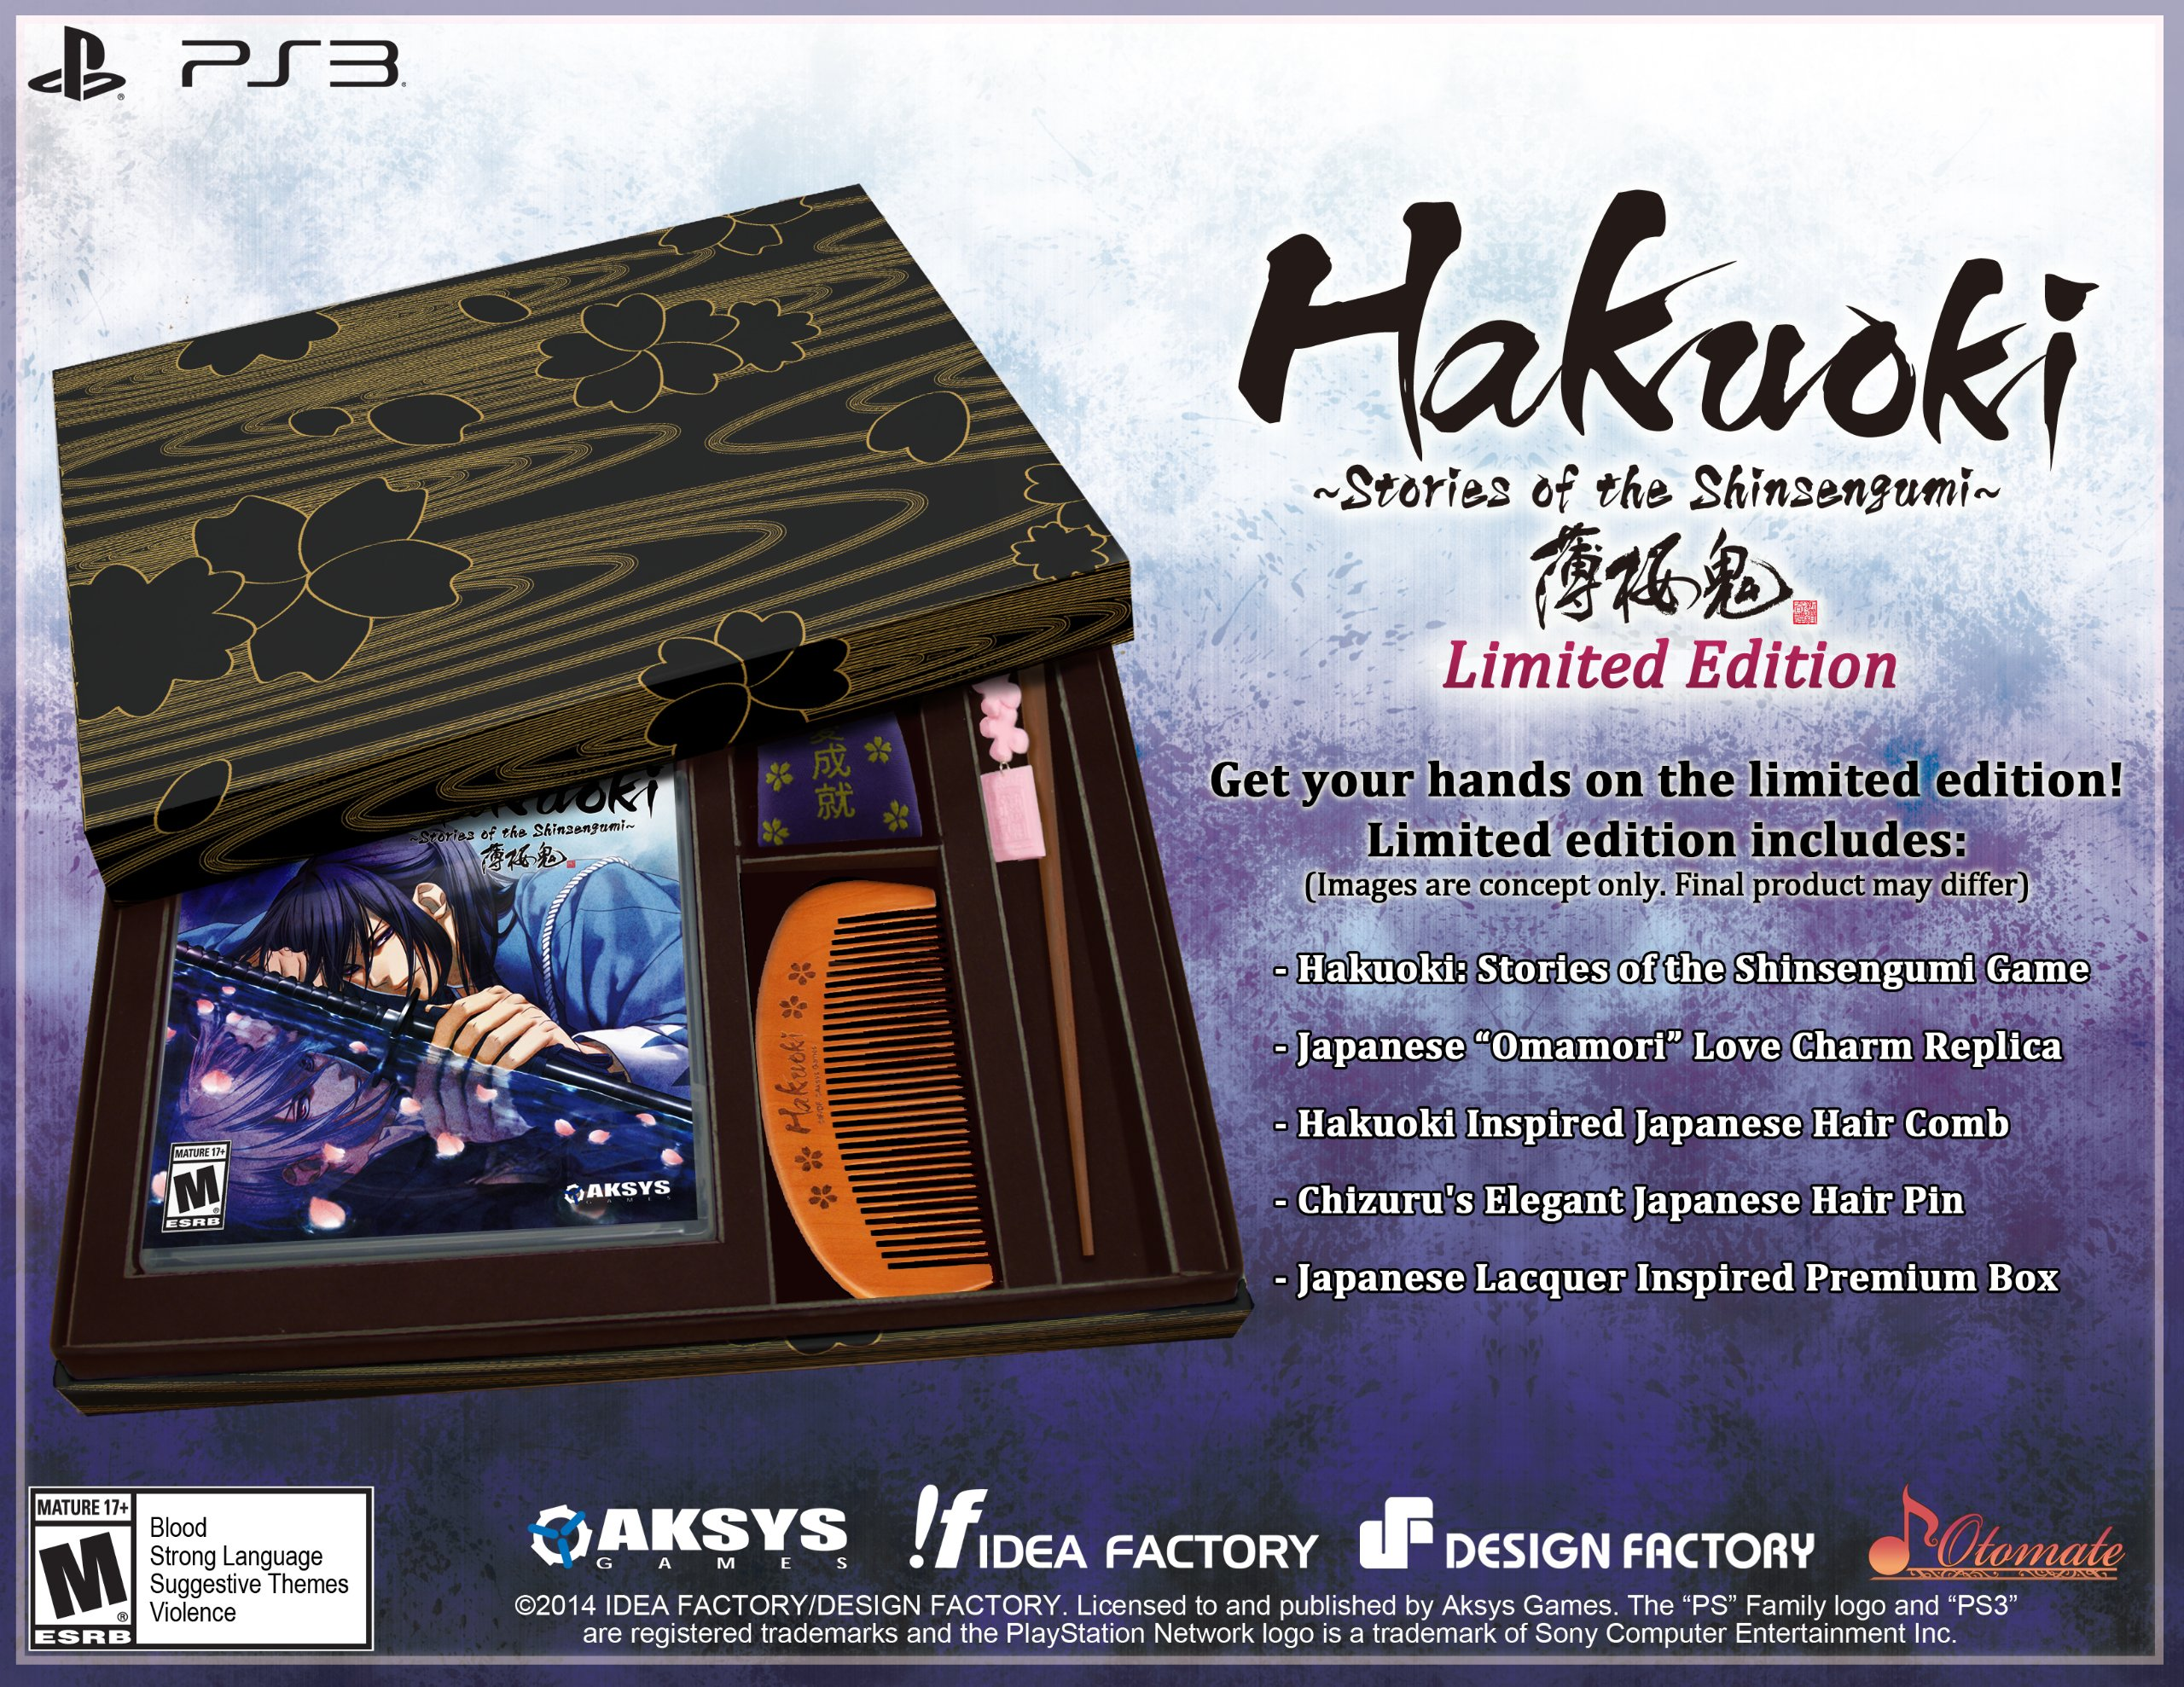 Hakuoki: Stories of the Shinsengumi Limited Edition Release Date (PS3)